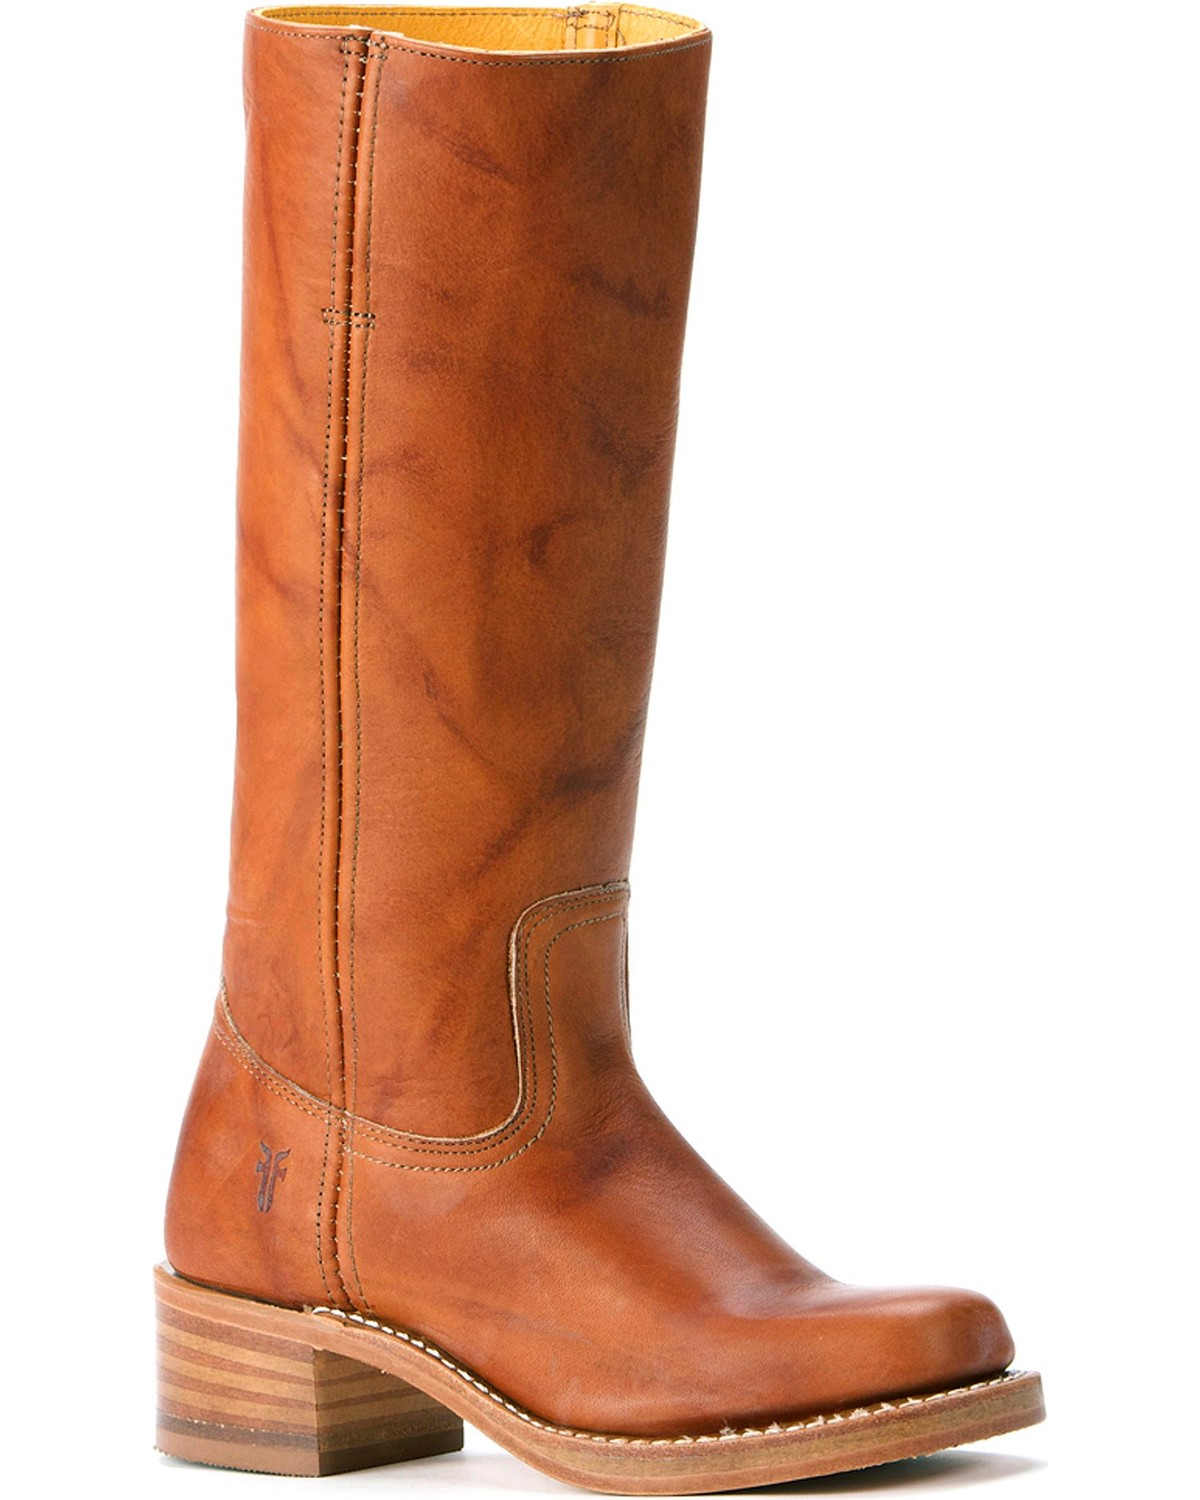 786574de32fe Frye Women s Campus Fashion Boots